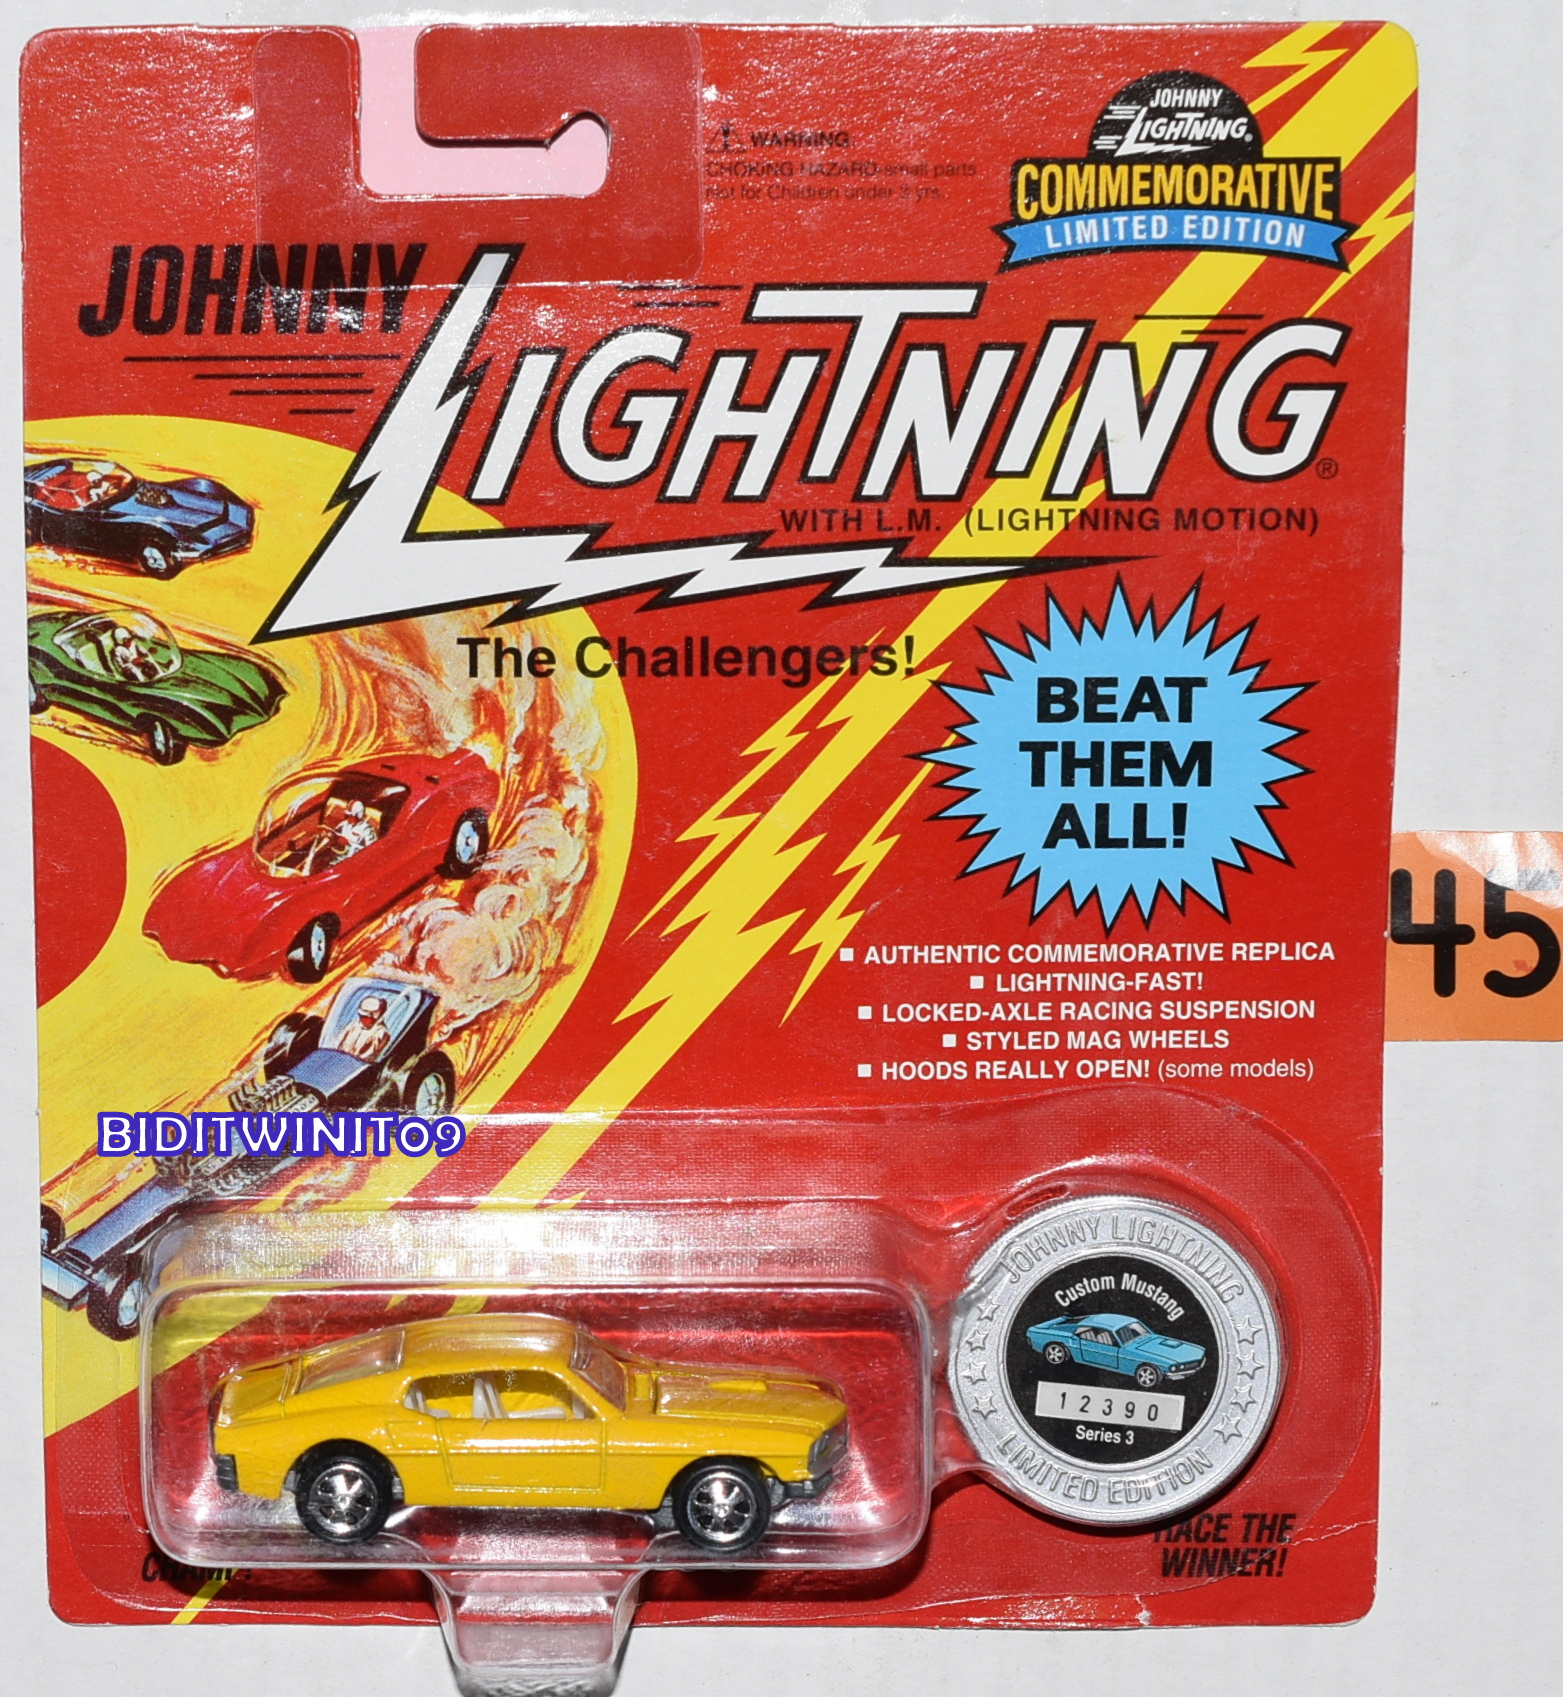 JOHNNY LIGHTNING COMMEMORATIVE CUSTOM MUSTANG SERIES 3 LIMITED EDITION YELLOW E+